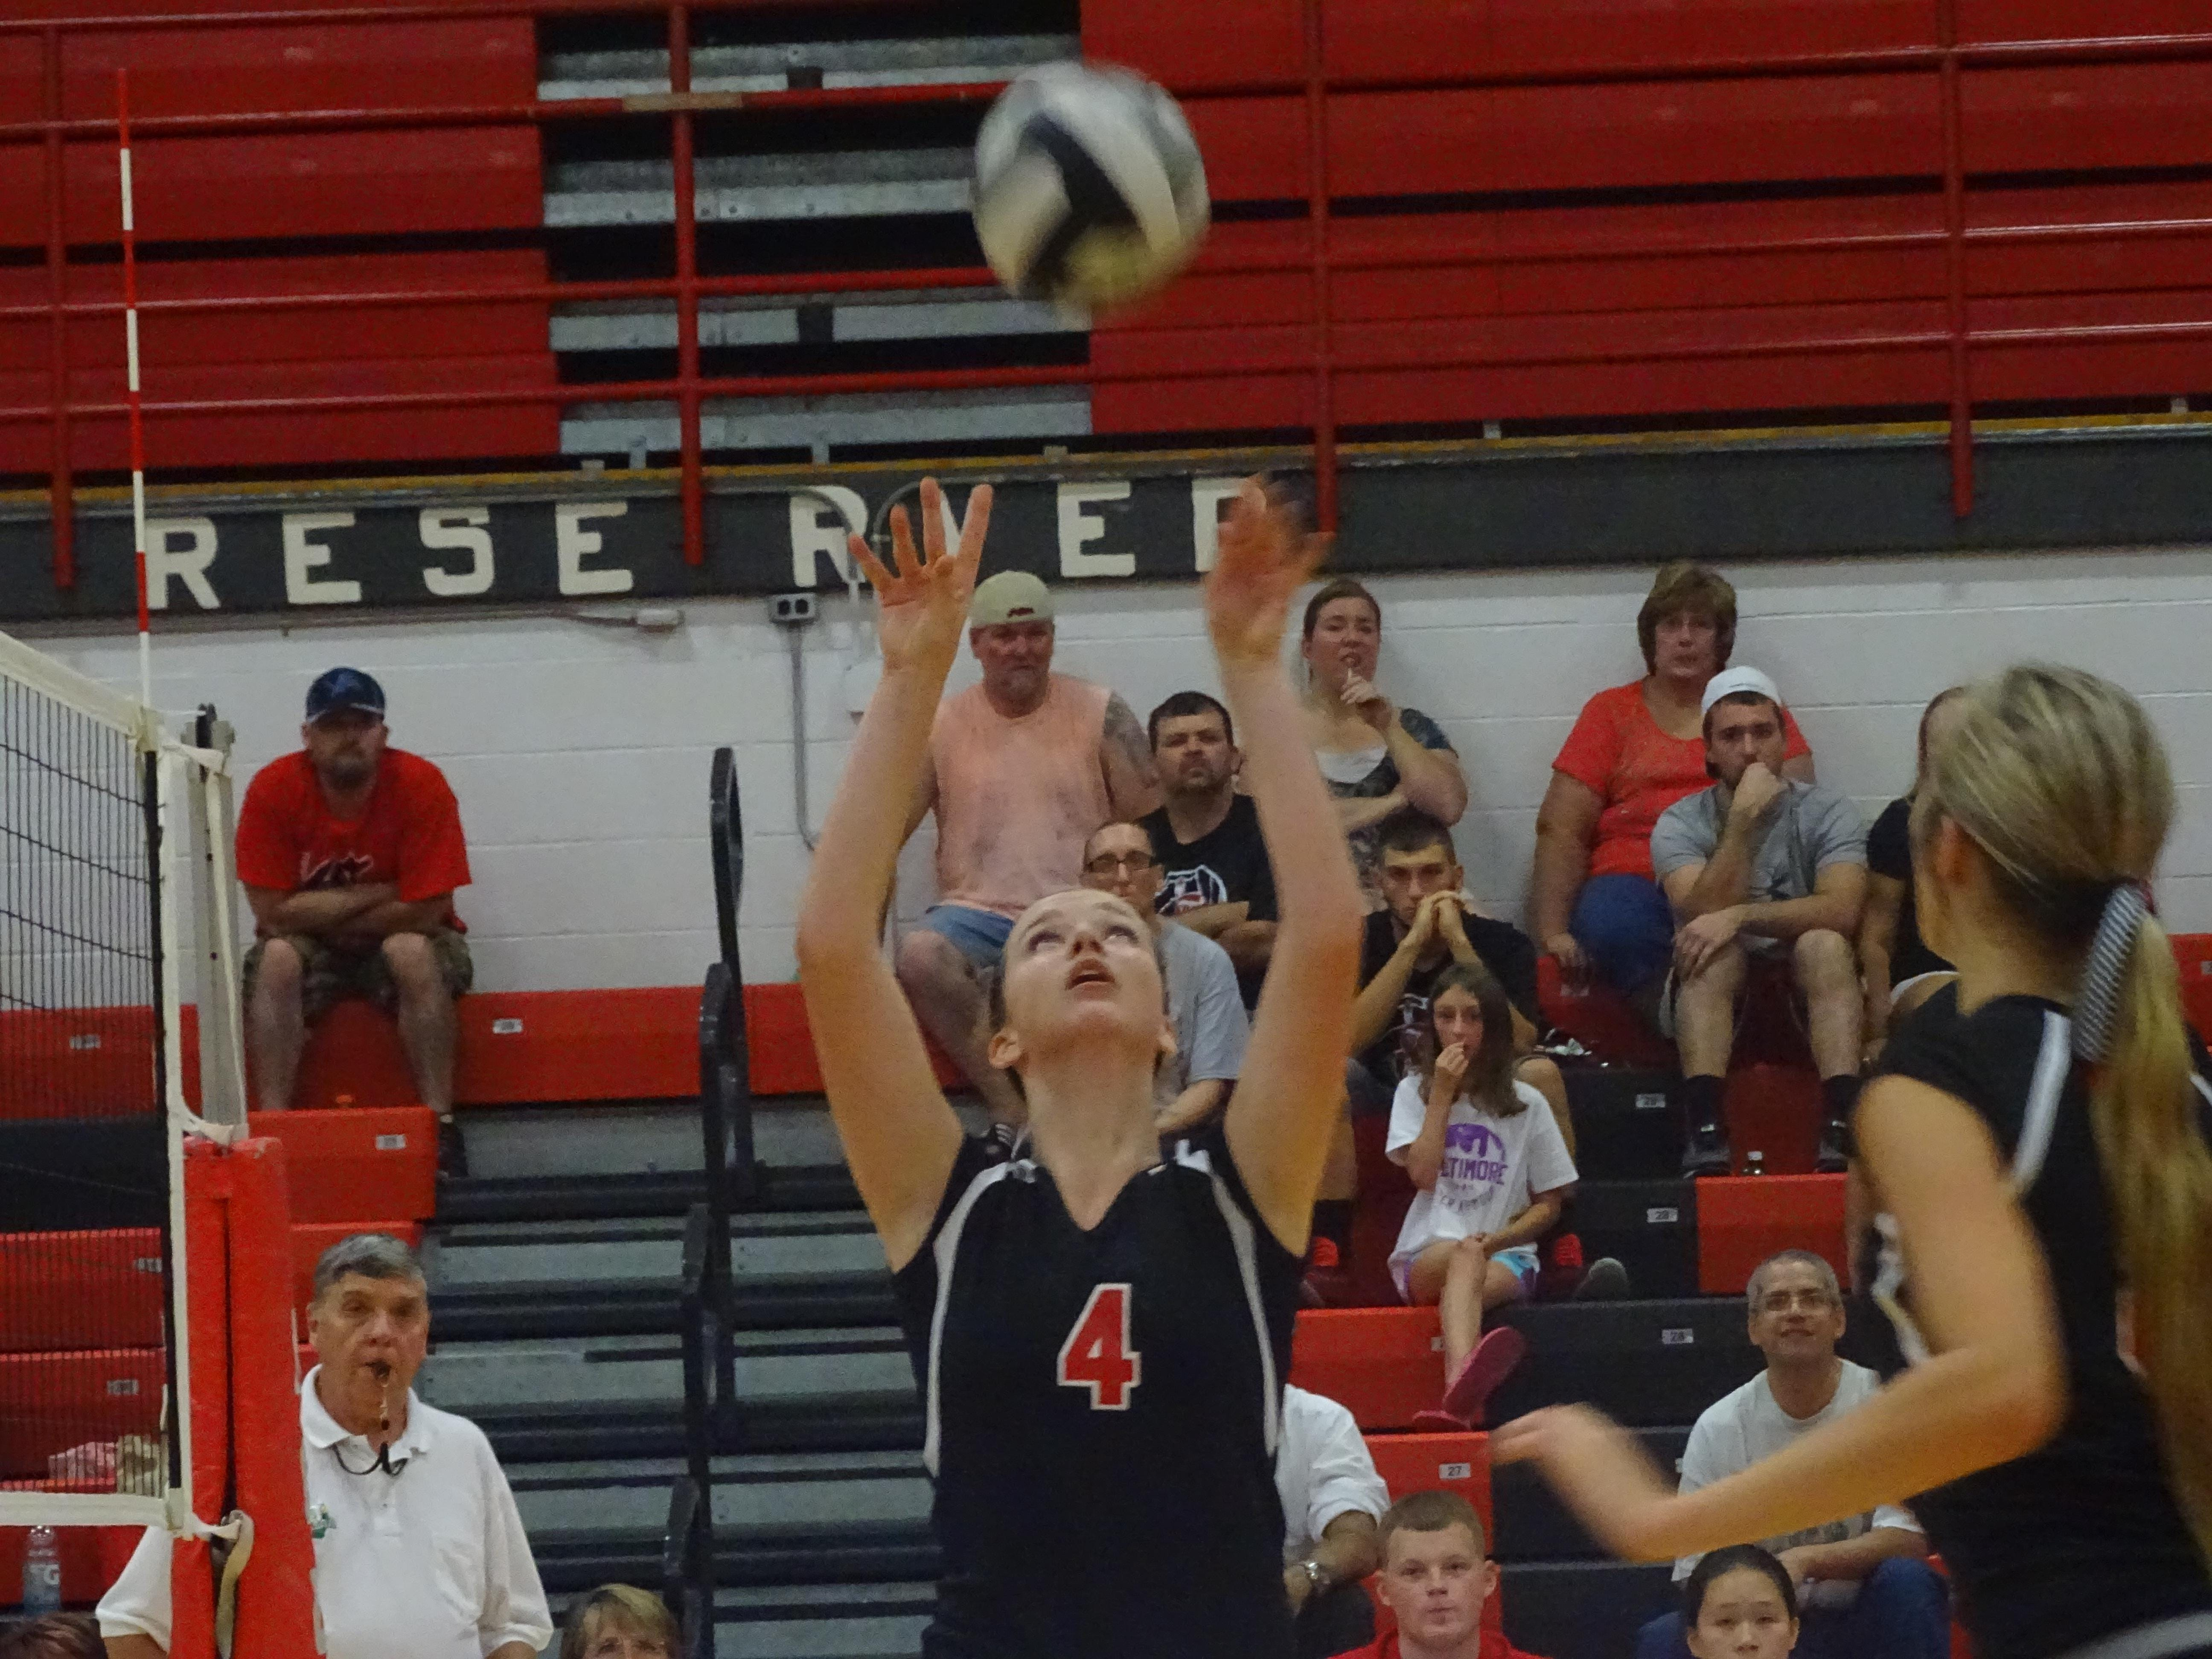 Lauren Hire sets the ball in Wednesday's game against Meadowbrook.